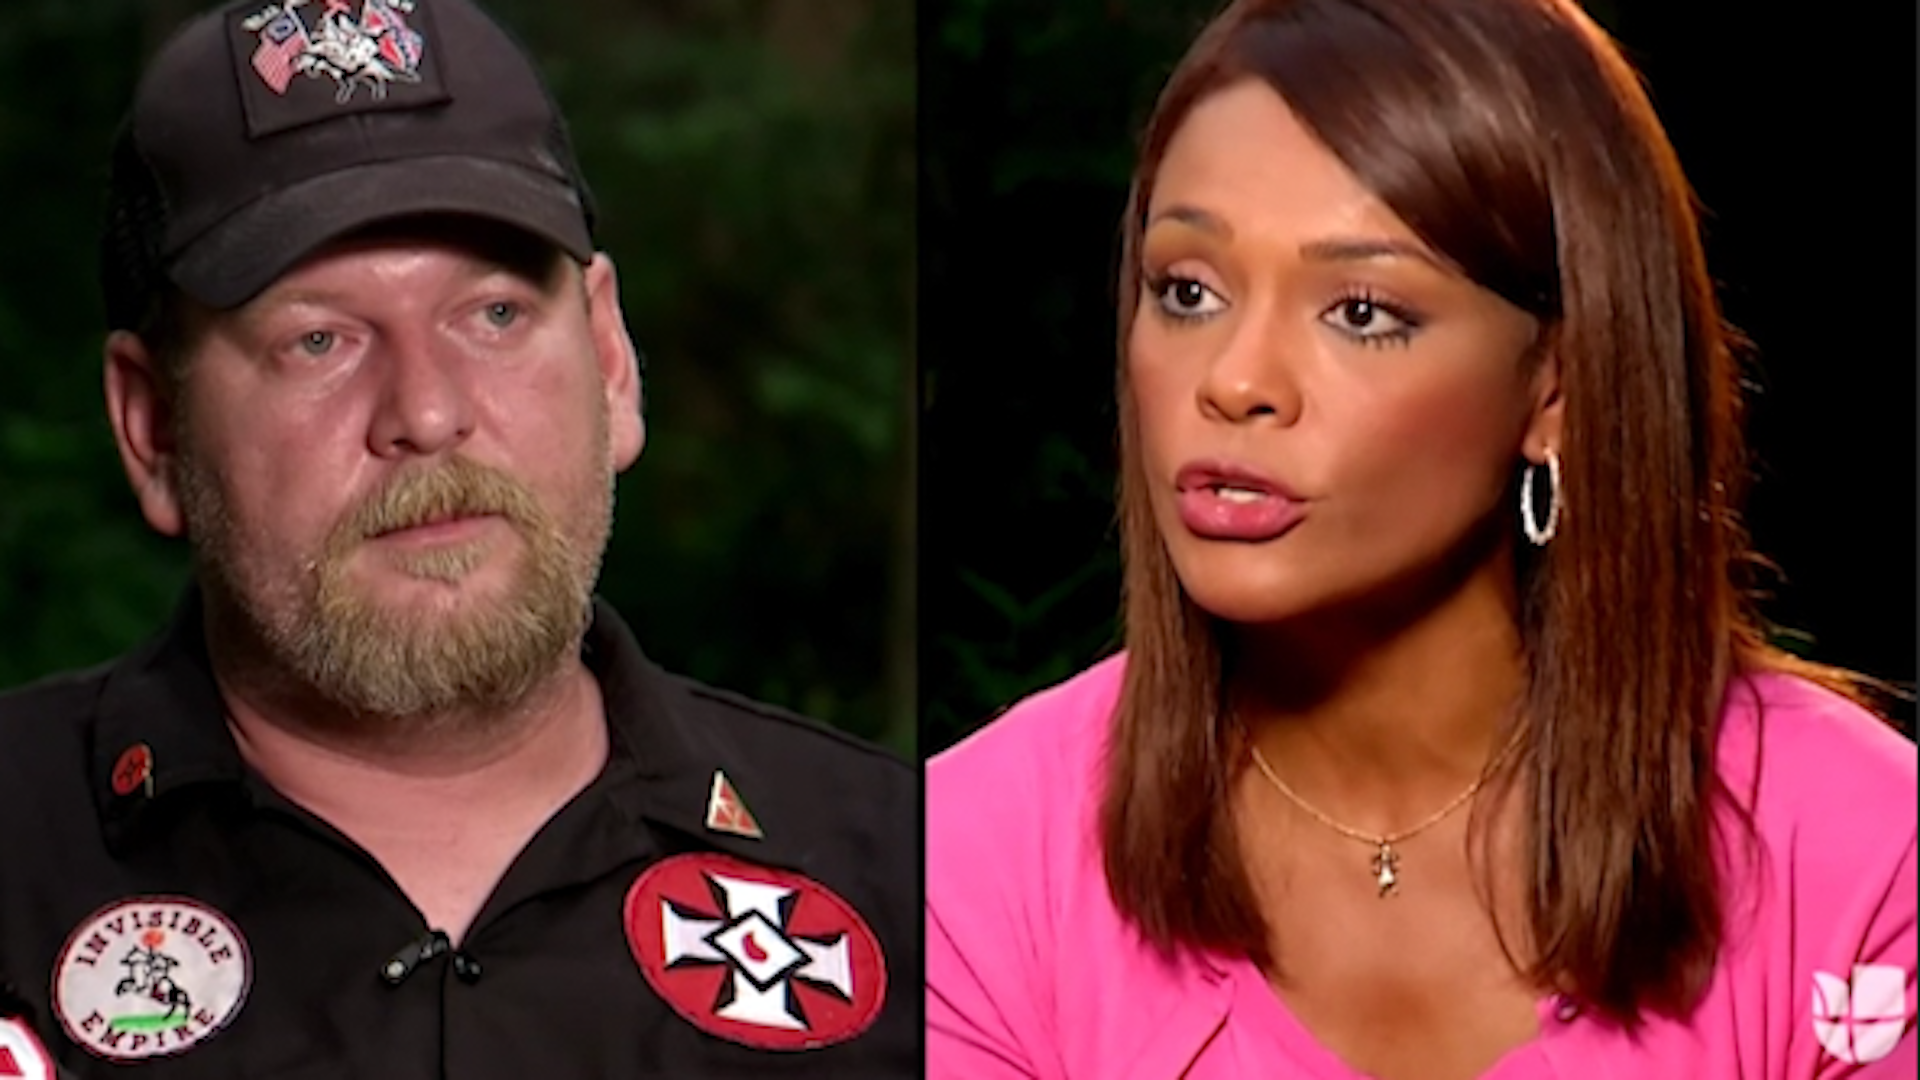 KKK leader threatens to 'burn' Latina journalist, the first black person on his property